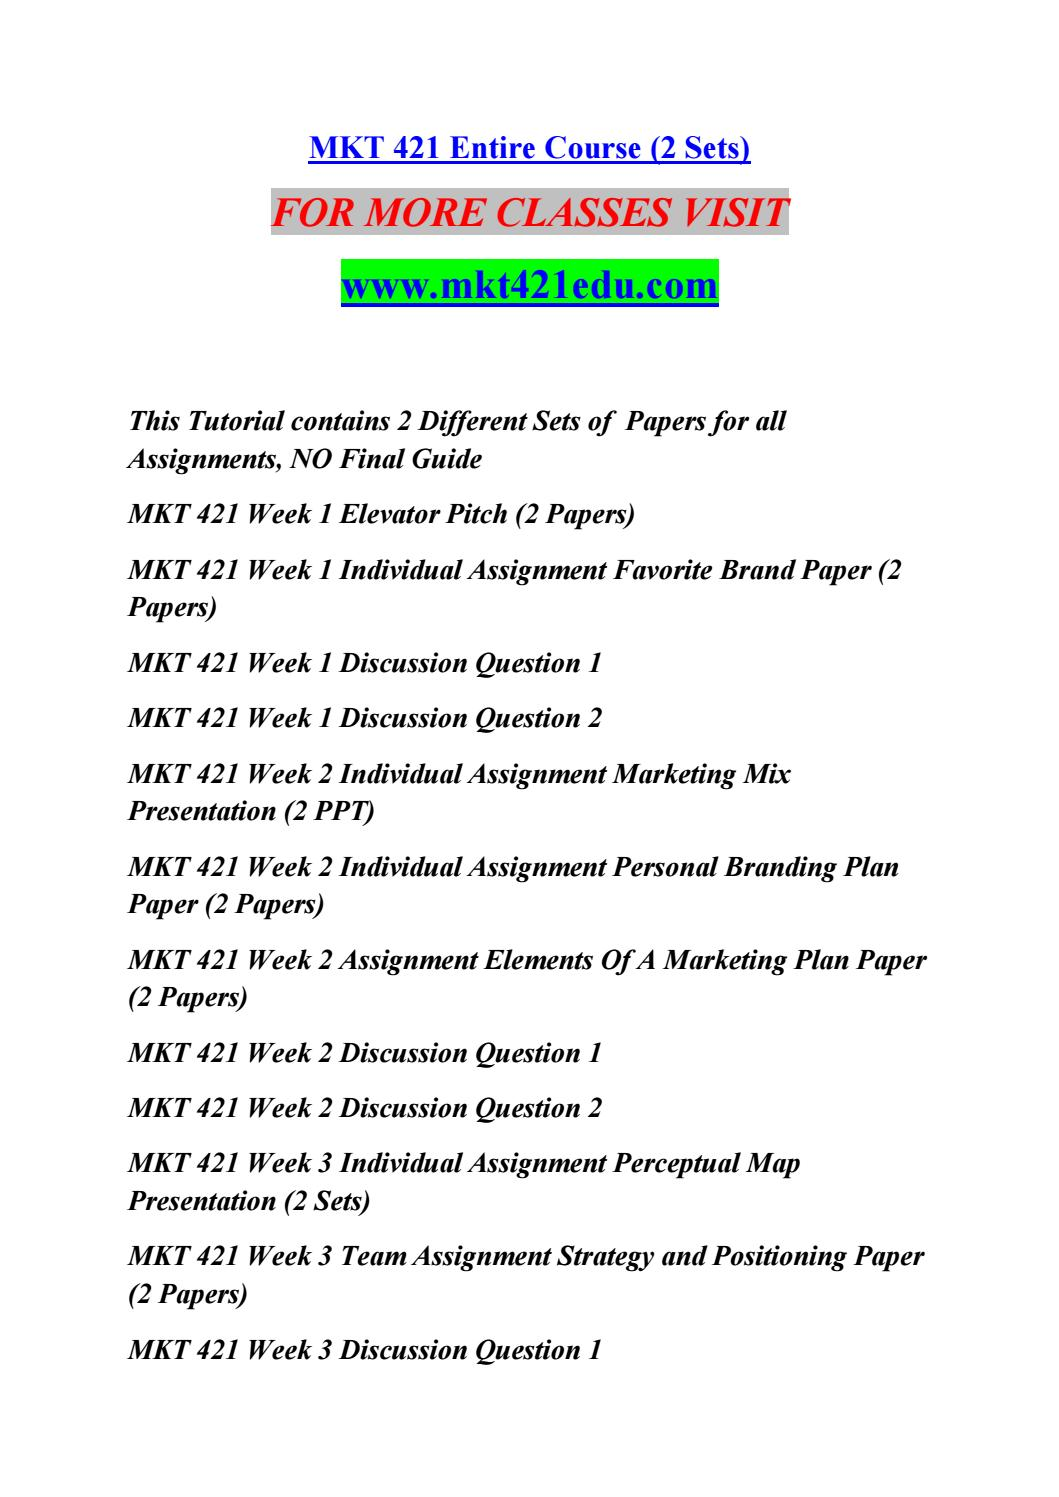 mkt 421 learning team marketing plan final paper and presentation Mkt 421 week 5 learning team marketing plan final paper and presentation integrating your previous learning team assignments into a final marketing plan.